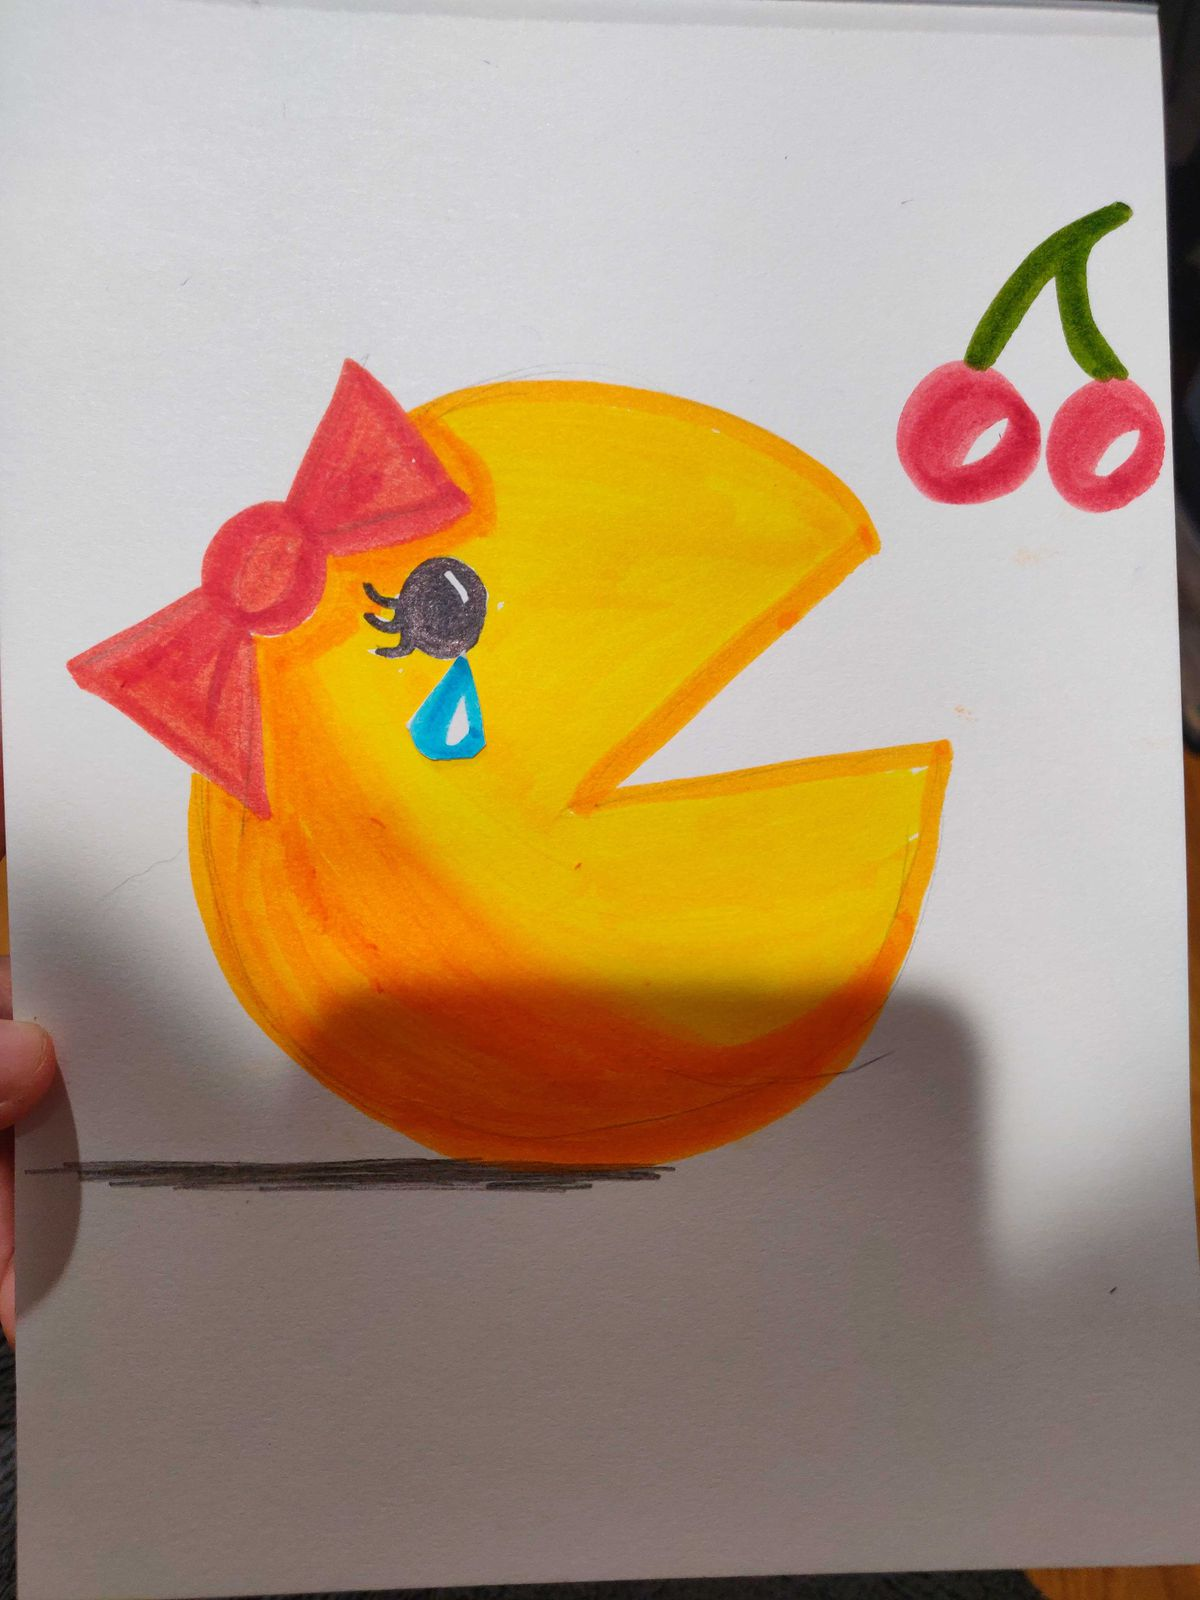 Ms. Pac-Man reaches in vain for a cherry power-up as a tear rolls down her cheek